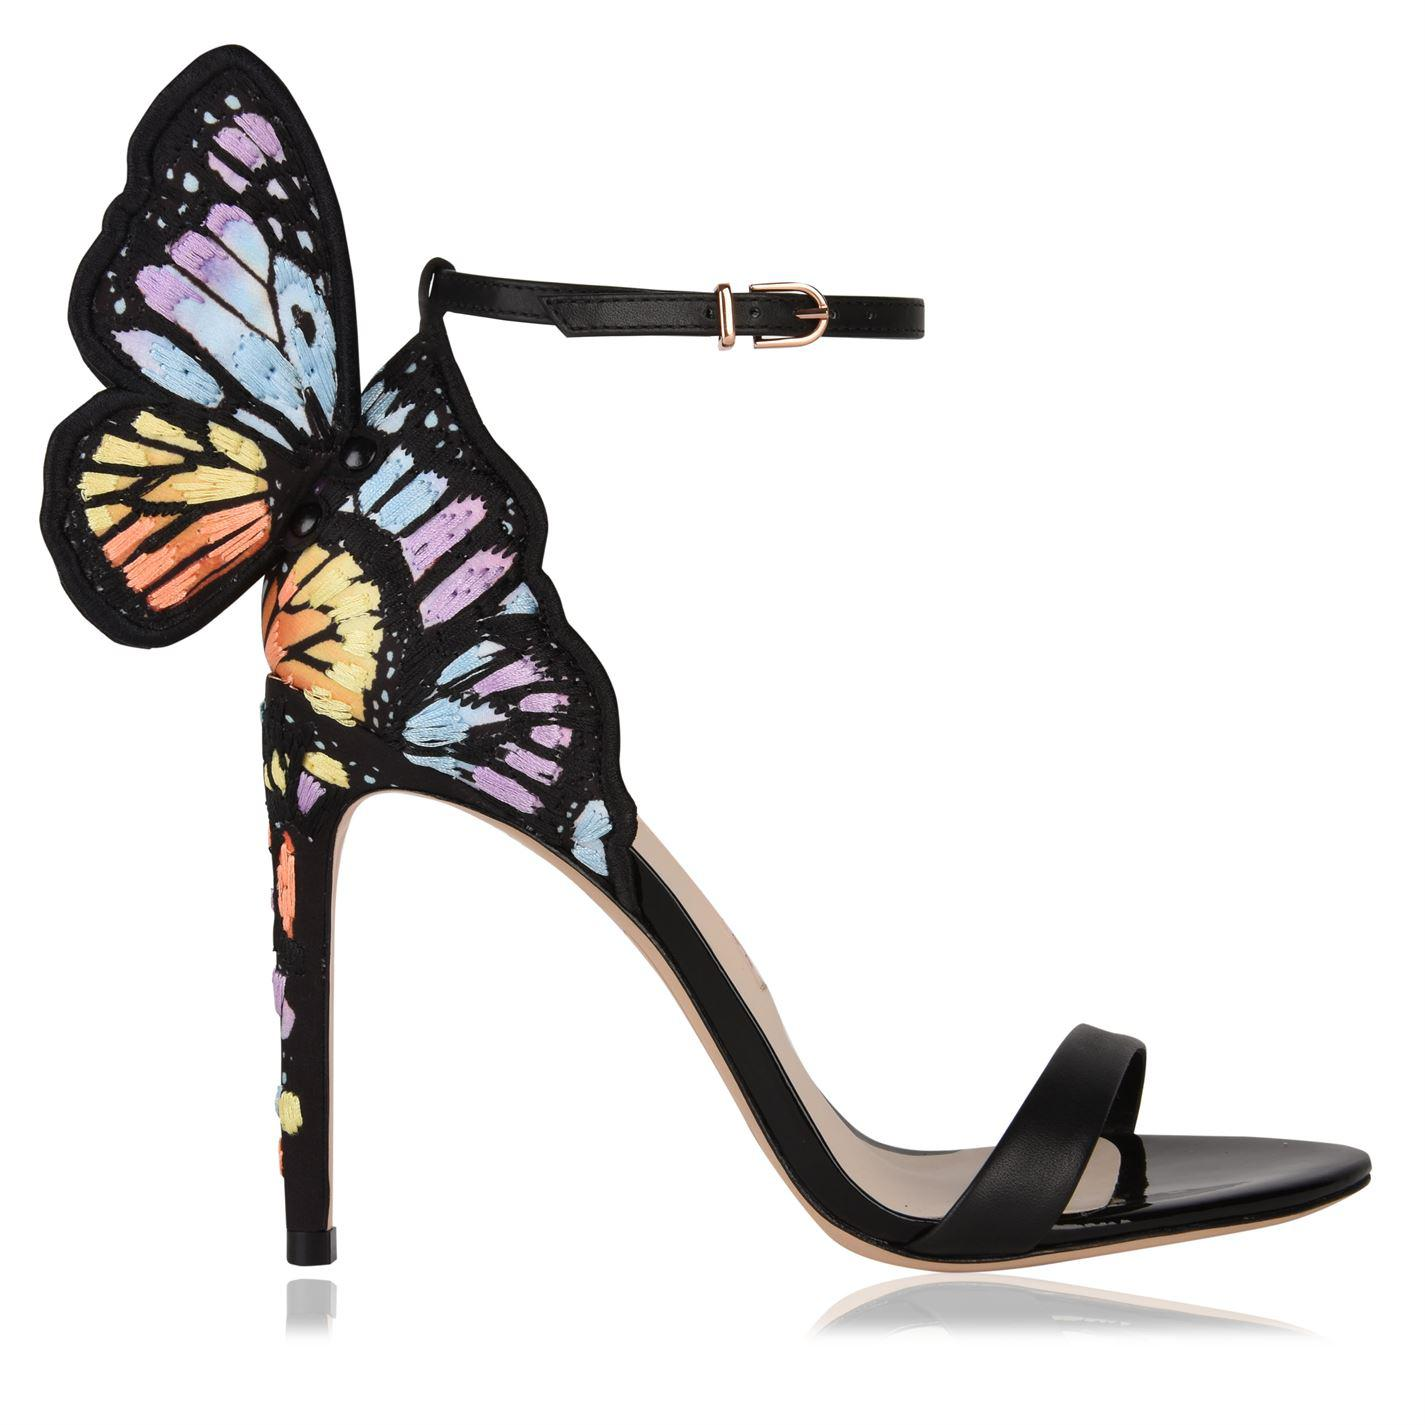 b7ed400e8afba0 Sophia Webster. Women s Black Chiara Embroidered Satin And Leather Sandals